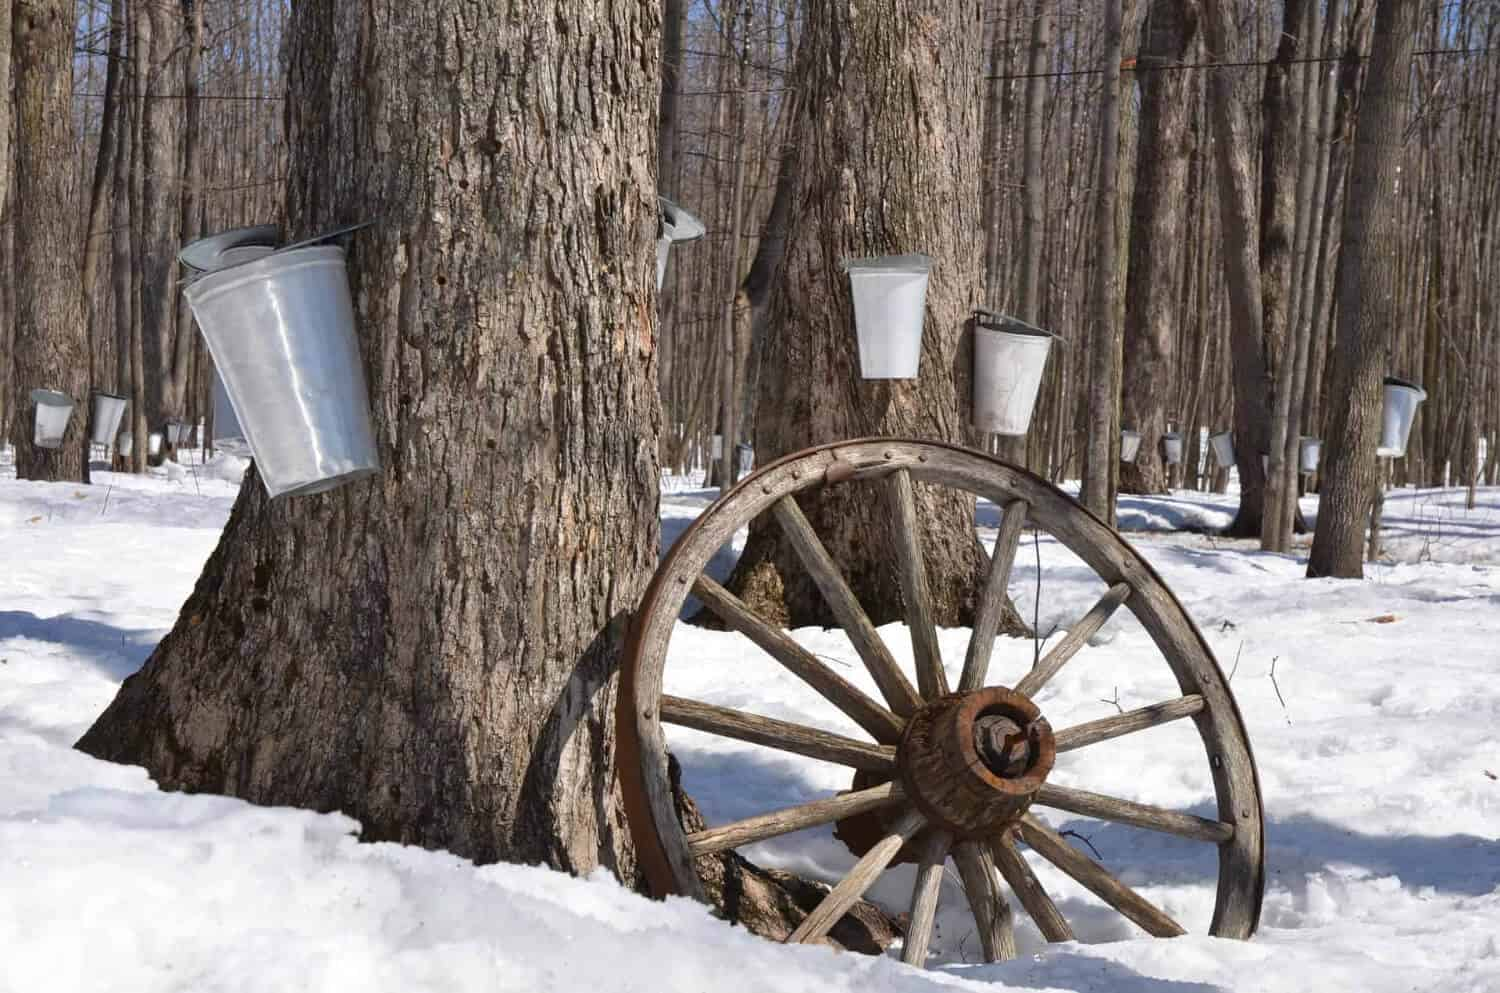 Tapping maple trees to use in place of sugar